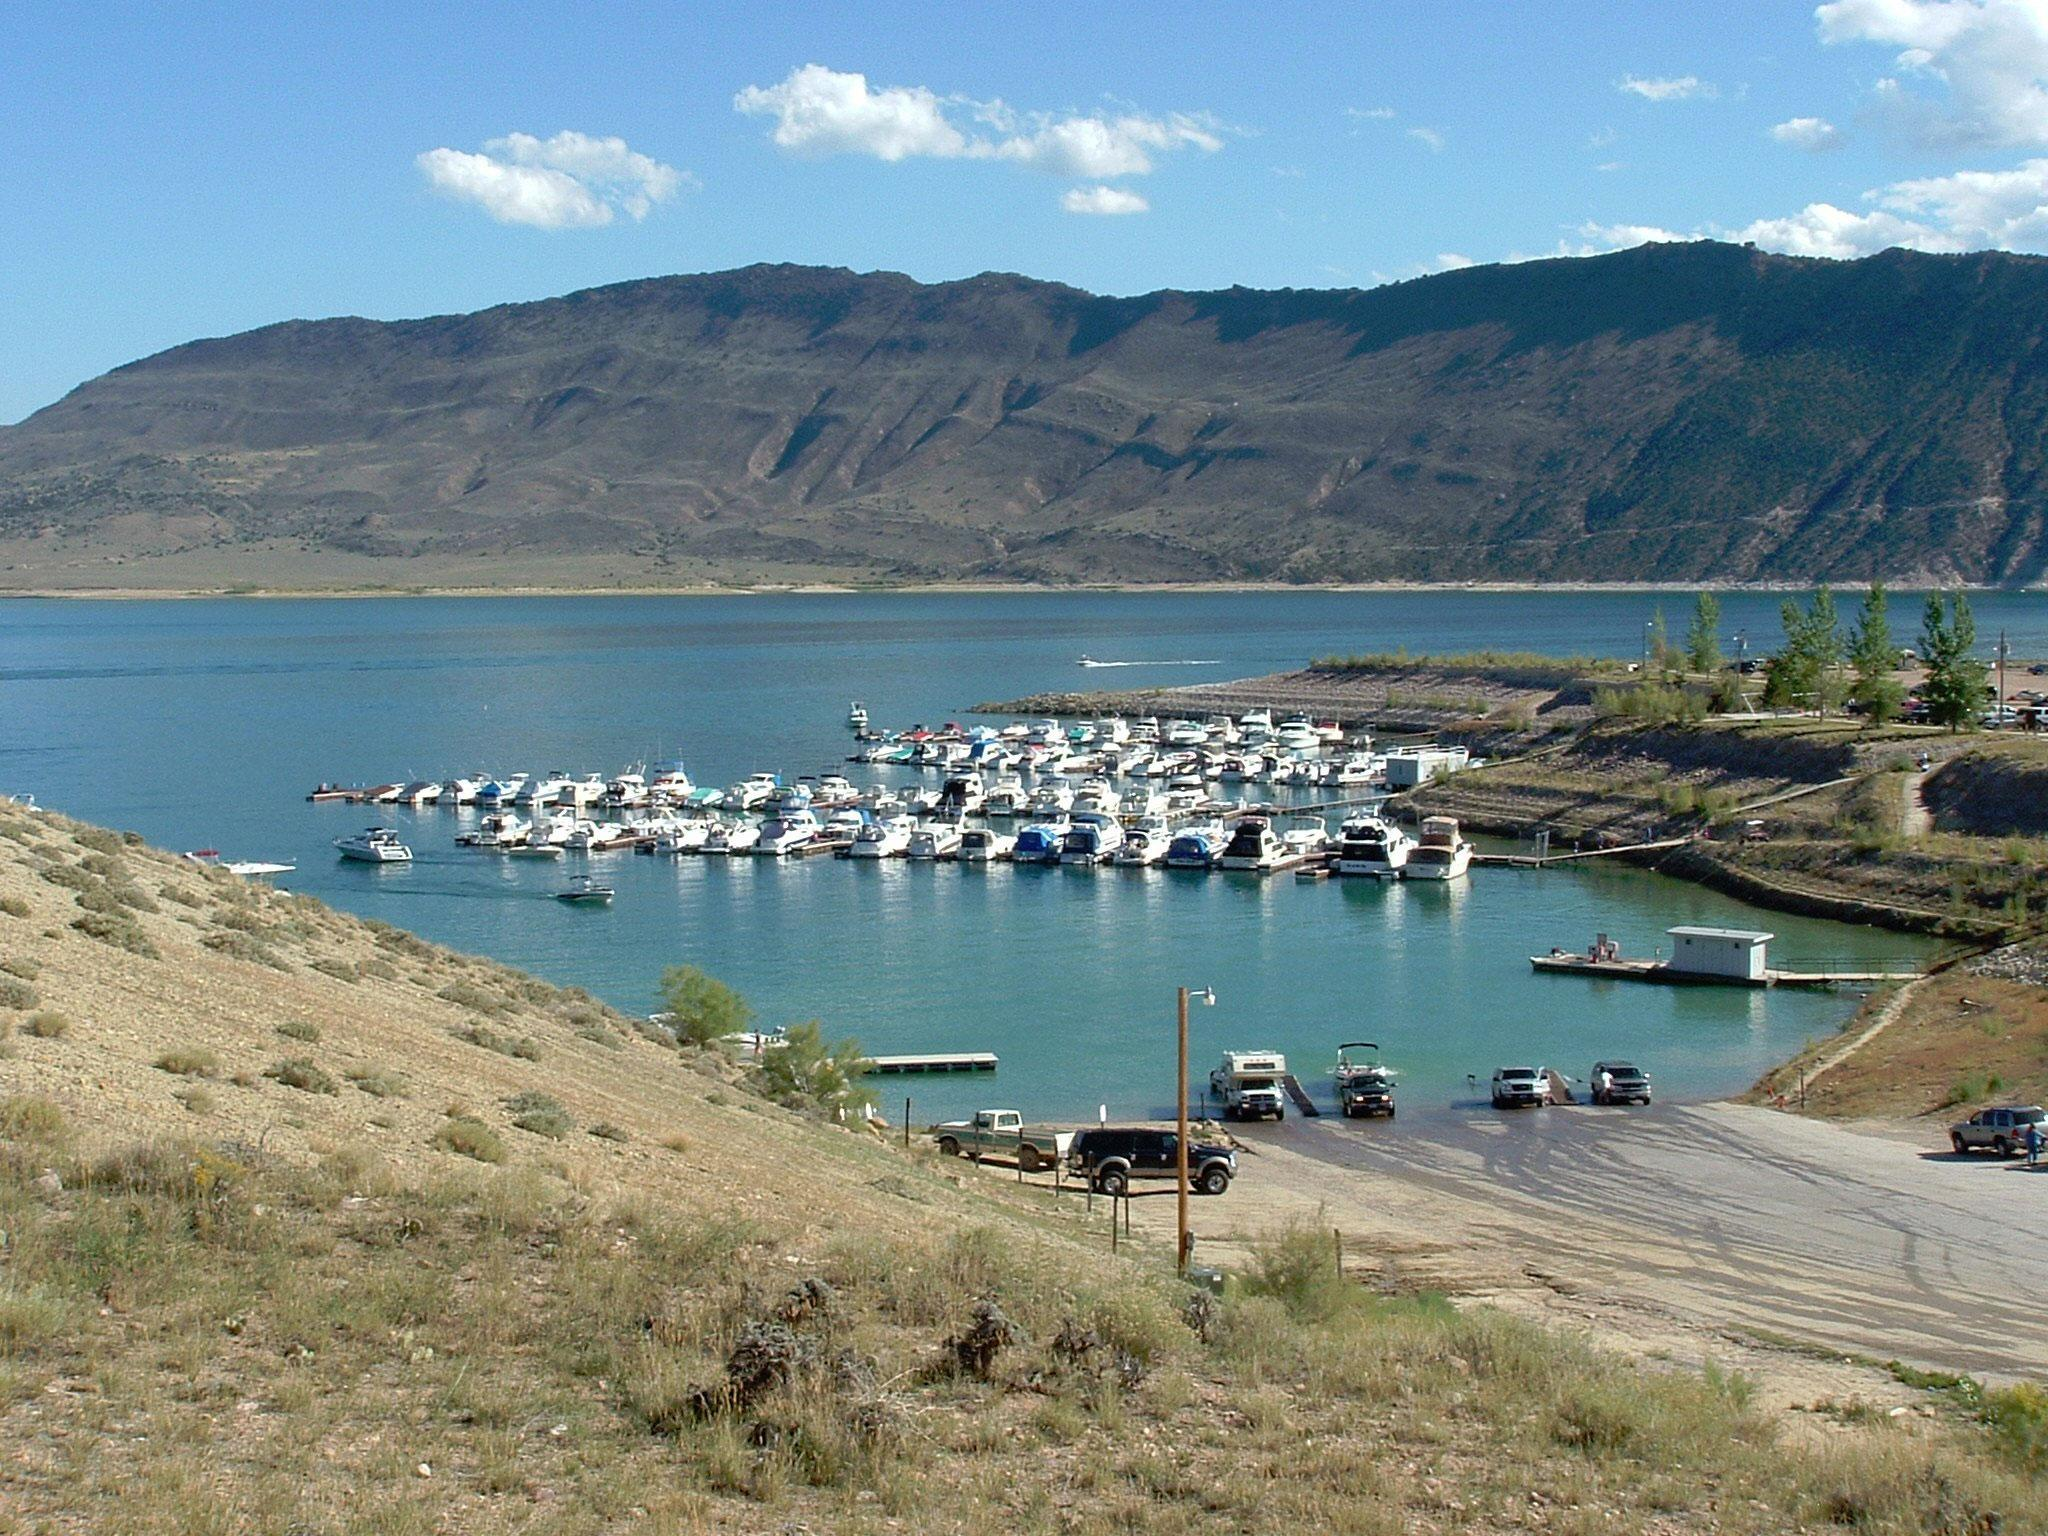 RV Camping in Flaming Gorge Nat. Rec. Area | MR RV